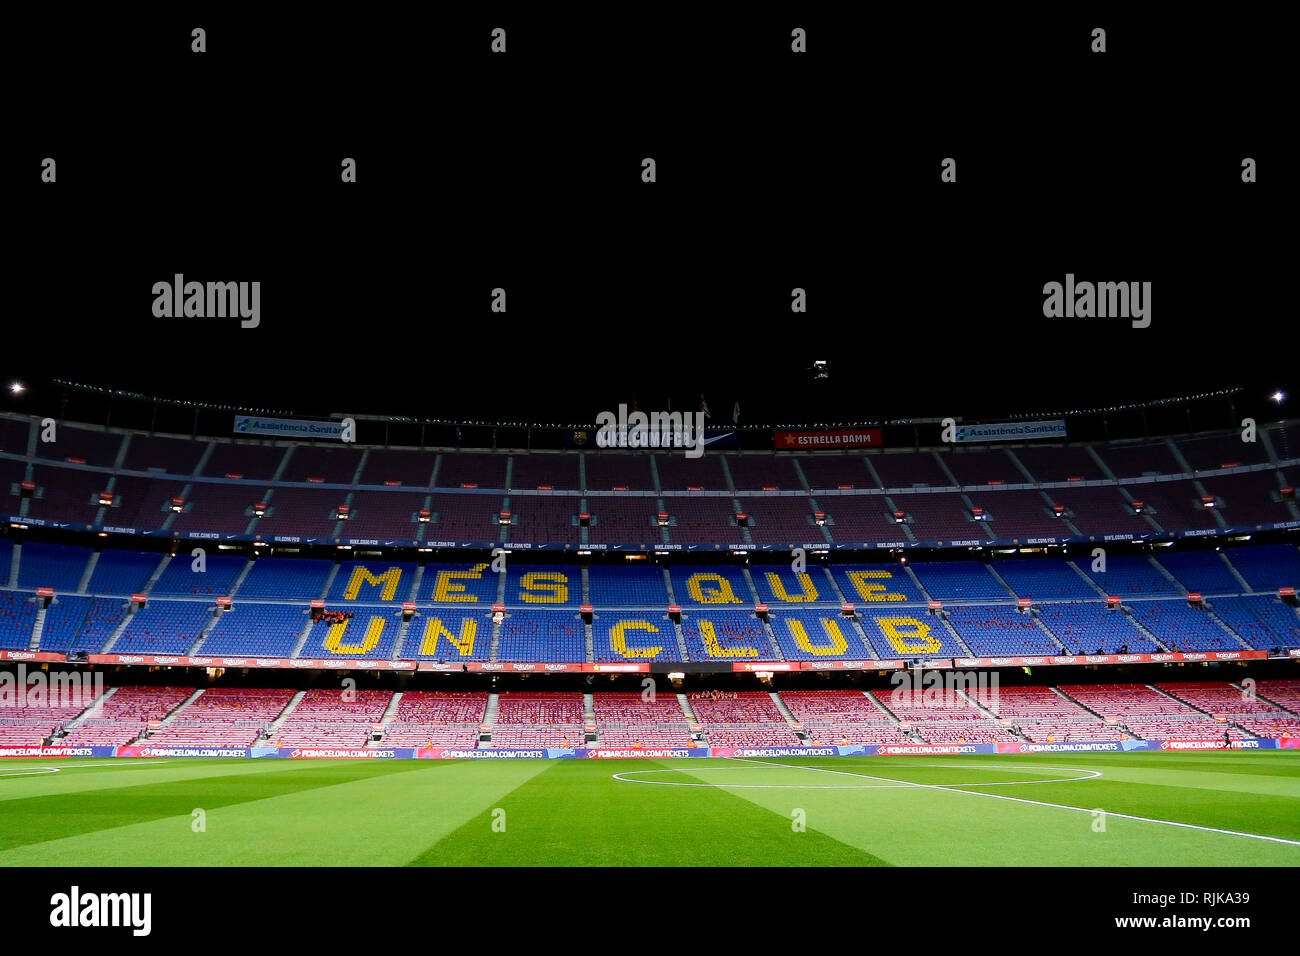 Camp Nou, Barcelona, Spain. 6th Feb, 2019. Copa del Rey football semi final, 1st leg, Barcelona versus Real Madrid; View of the Camp Nou Stadium one hour before start the match against Real Madrid Credit: Action Plus Sports/Alamy Live News Stock Photo